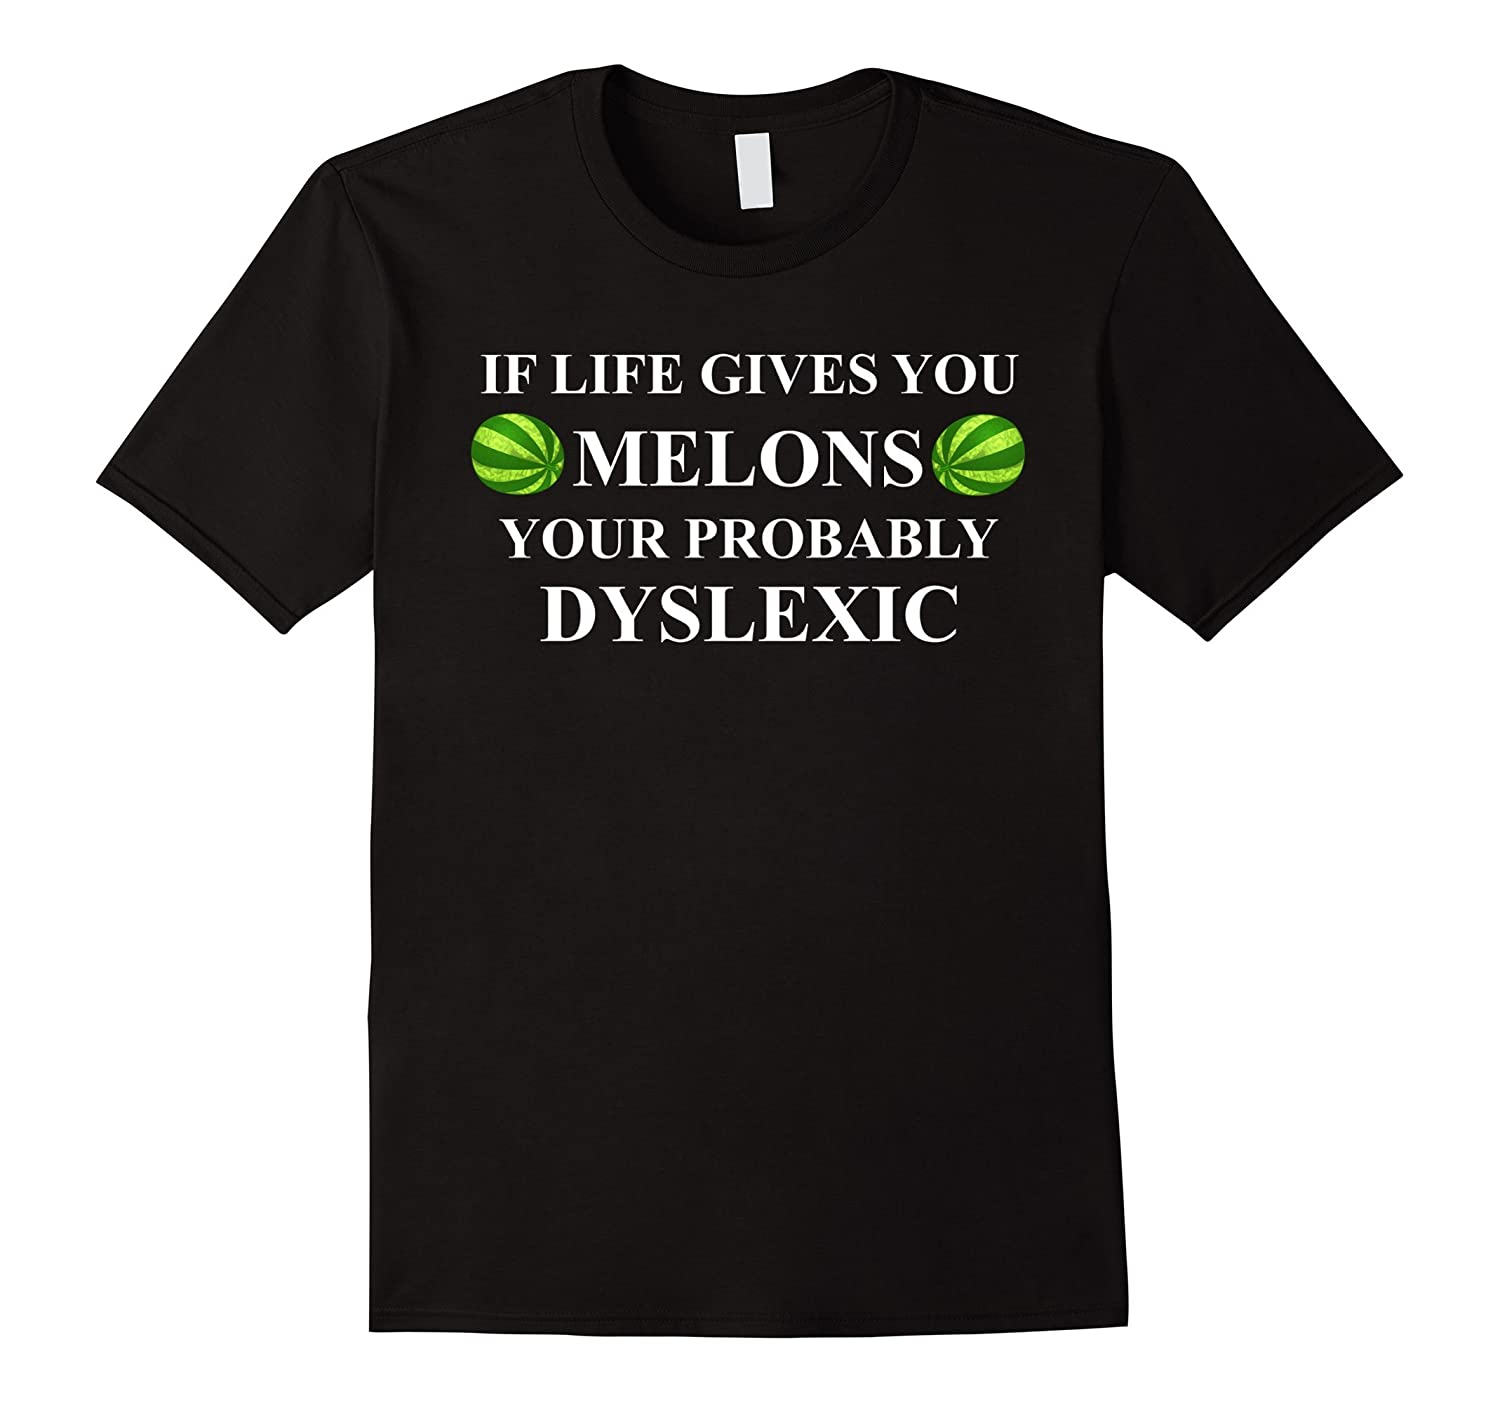 Funny dyslexic t shirt - If Life gives you Melons-Vaci